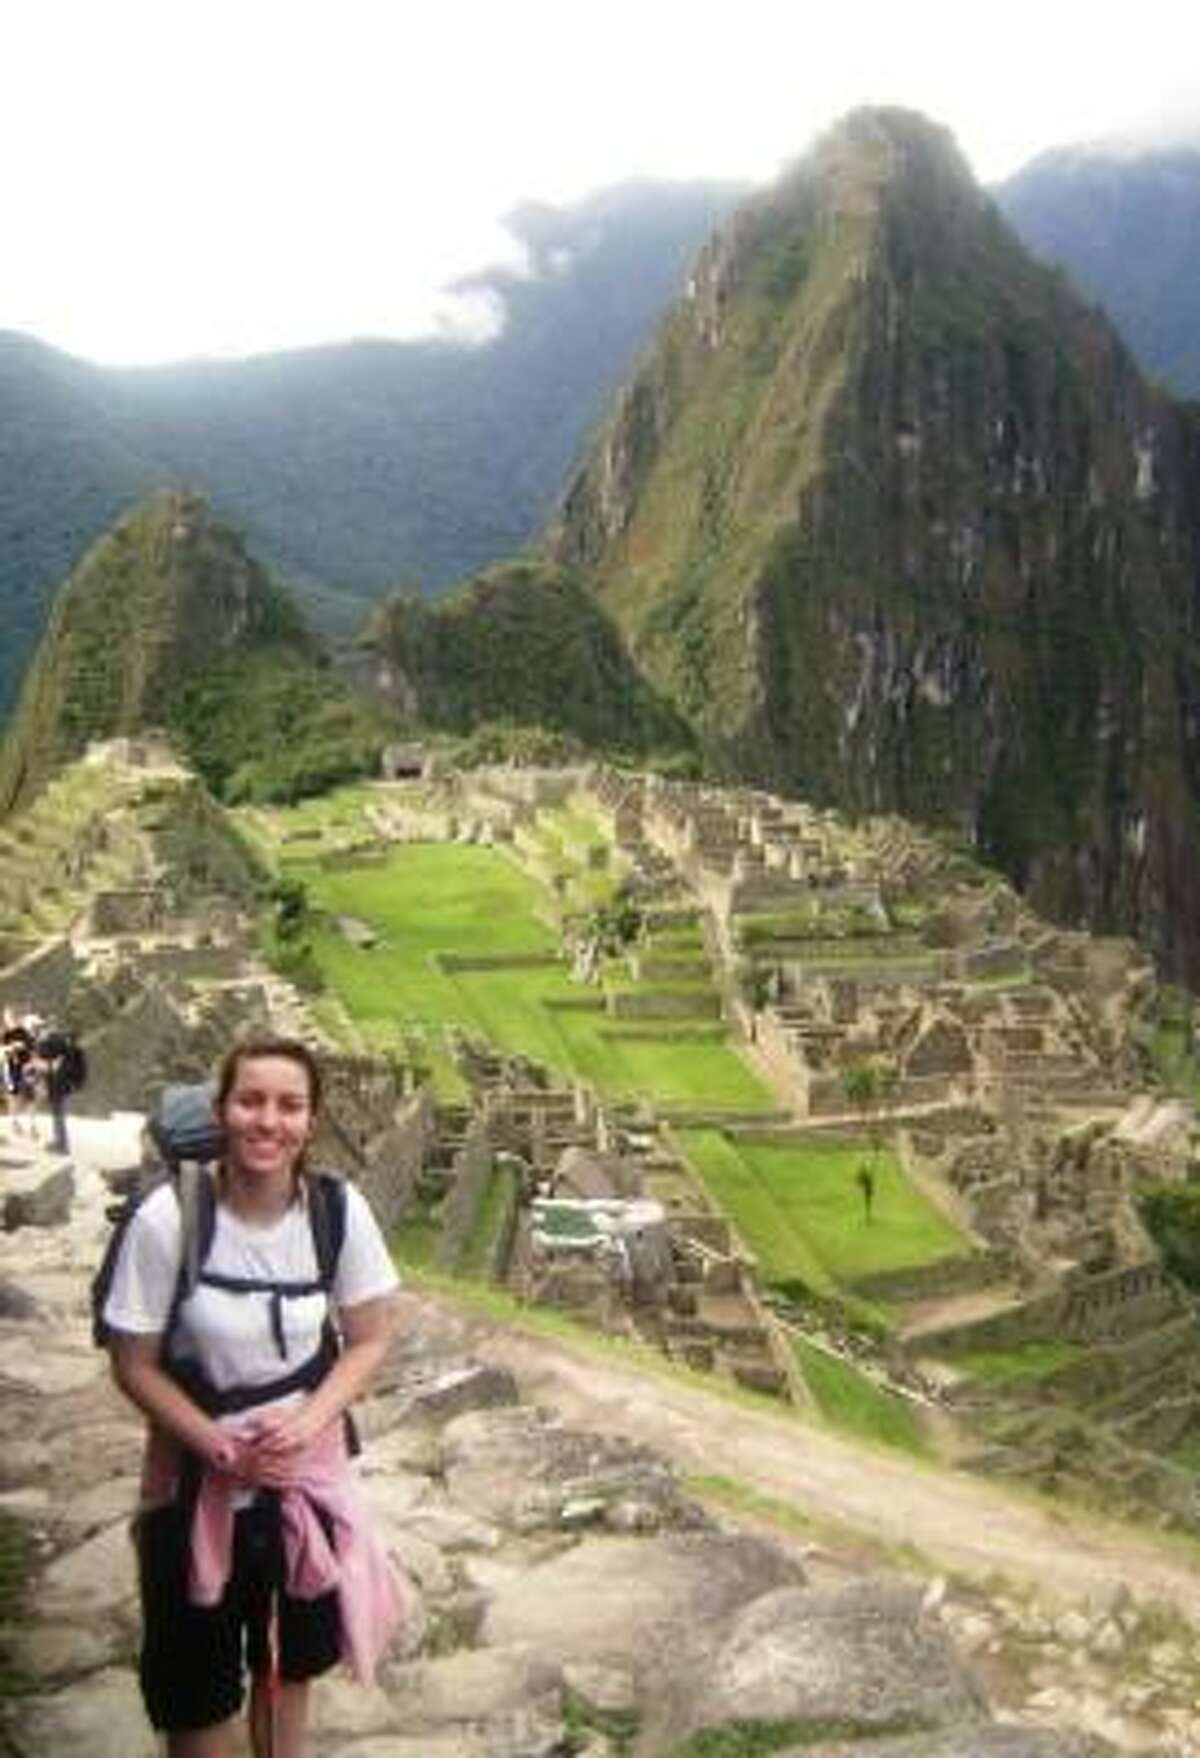 Grand-prize winner: Brooke Bellomy, pictured here in front of Machu Picchu, won a Carnival Conquest cruise based on her Wish You Were Here entry about Peru.